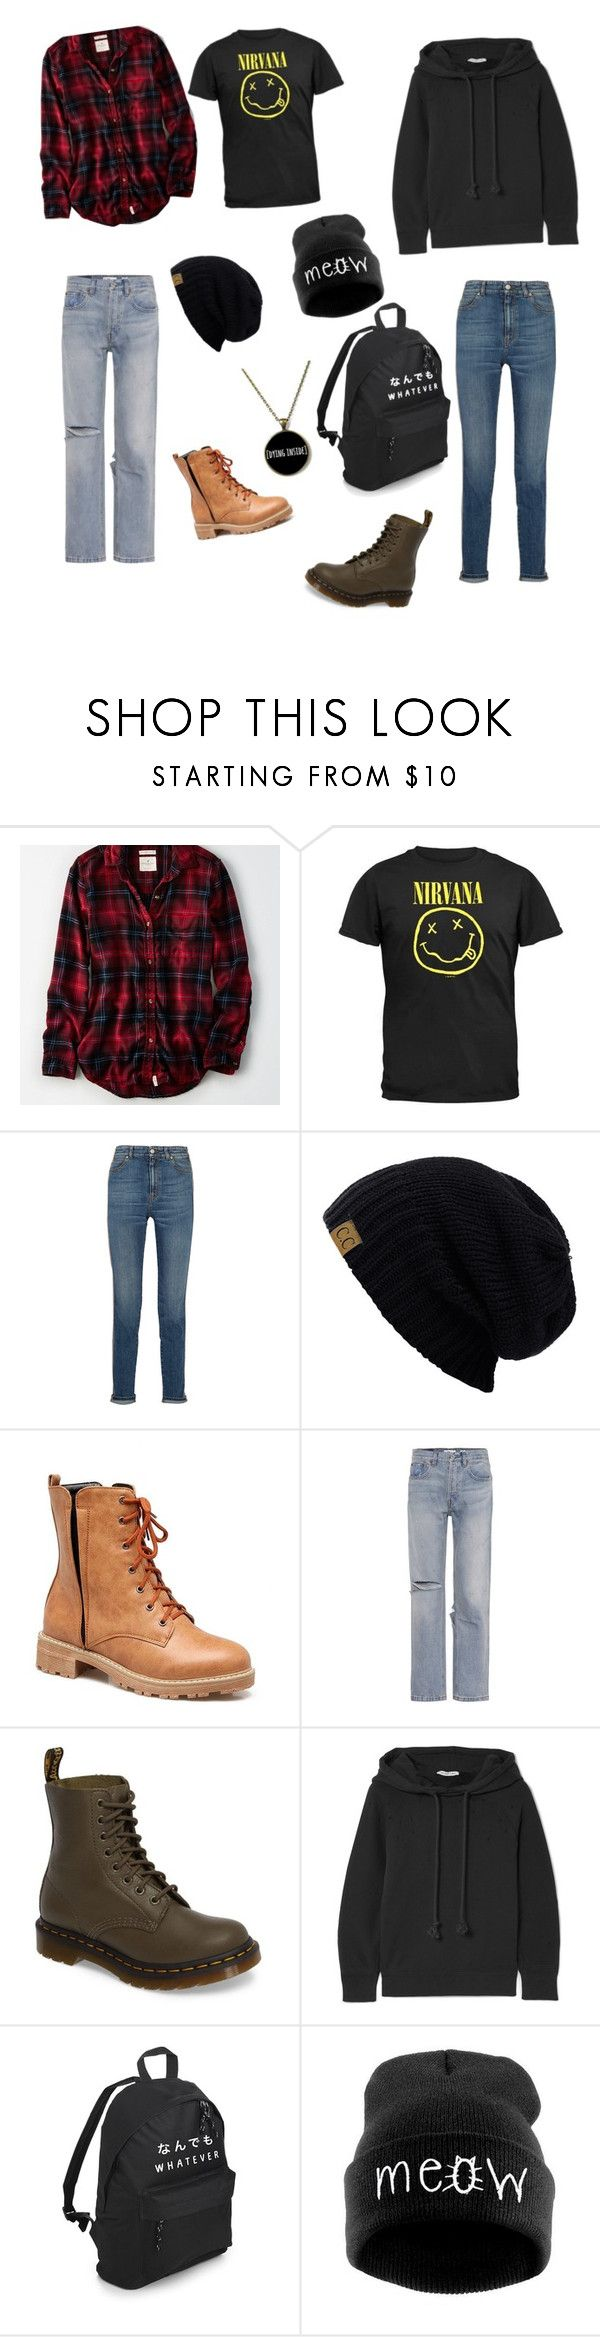 """""""Grunge Teen"""" by oni-hime on Polyvore featuring American Eagle Outfitters, Alexander McQueen, C.C, RE/DONE, Dr. Martens, Helmut Lang and WithChic"""